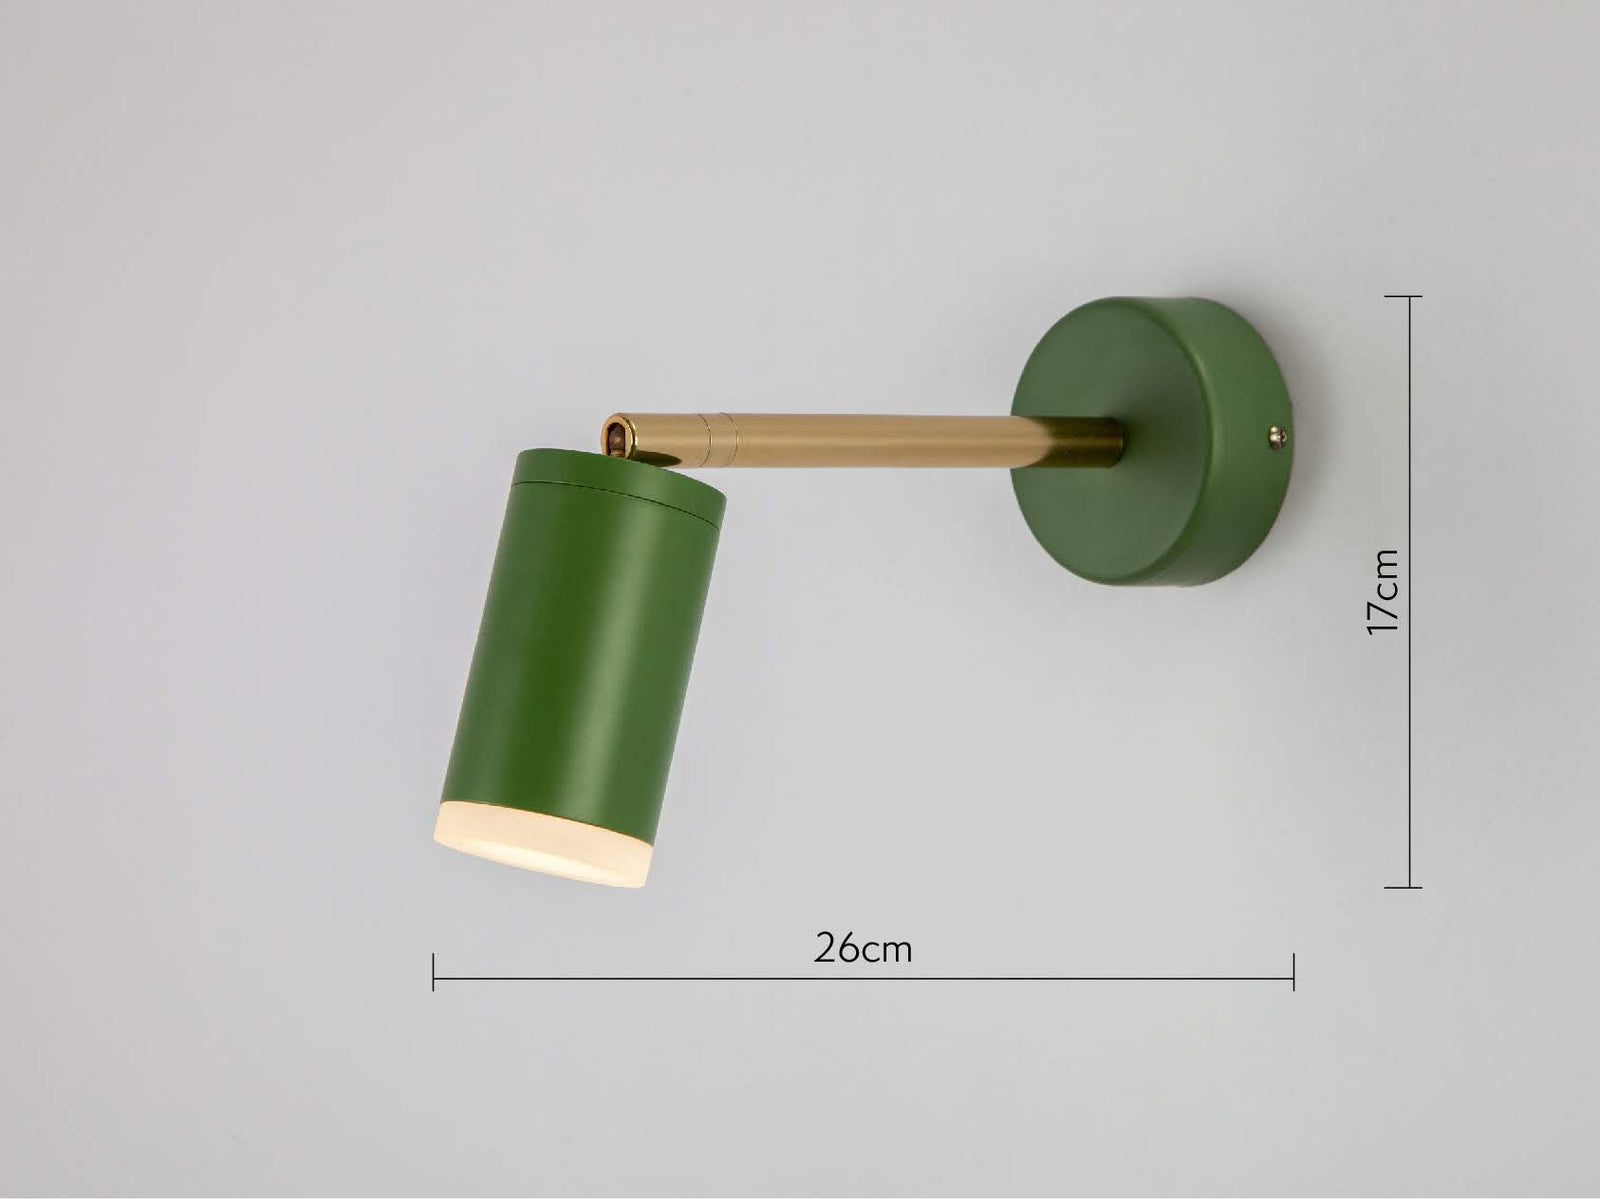 LED task wall light olive | dimensions | houseof.com